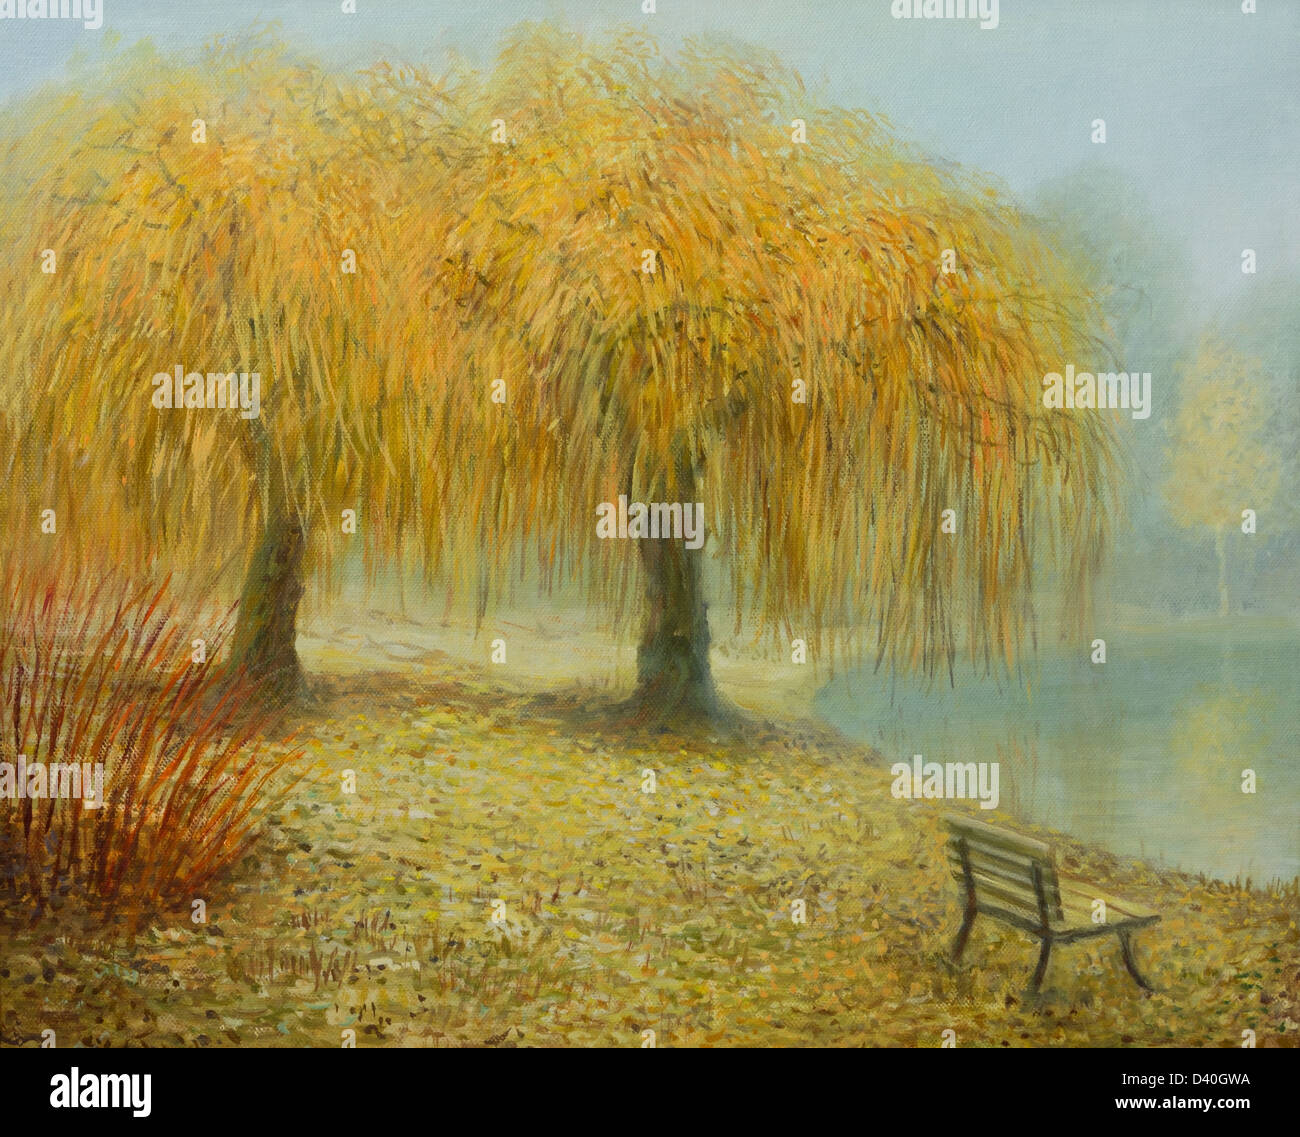 Willow Warm Stock Photos & Willow Warm Stock Images - Alamy